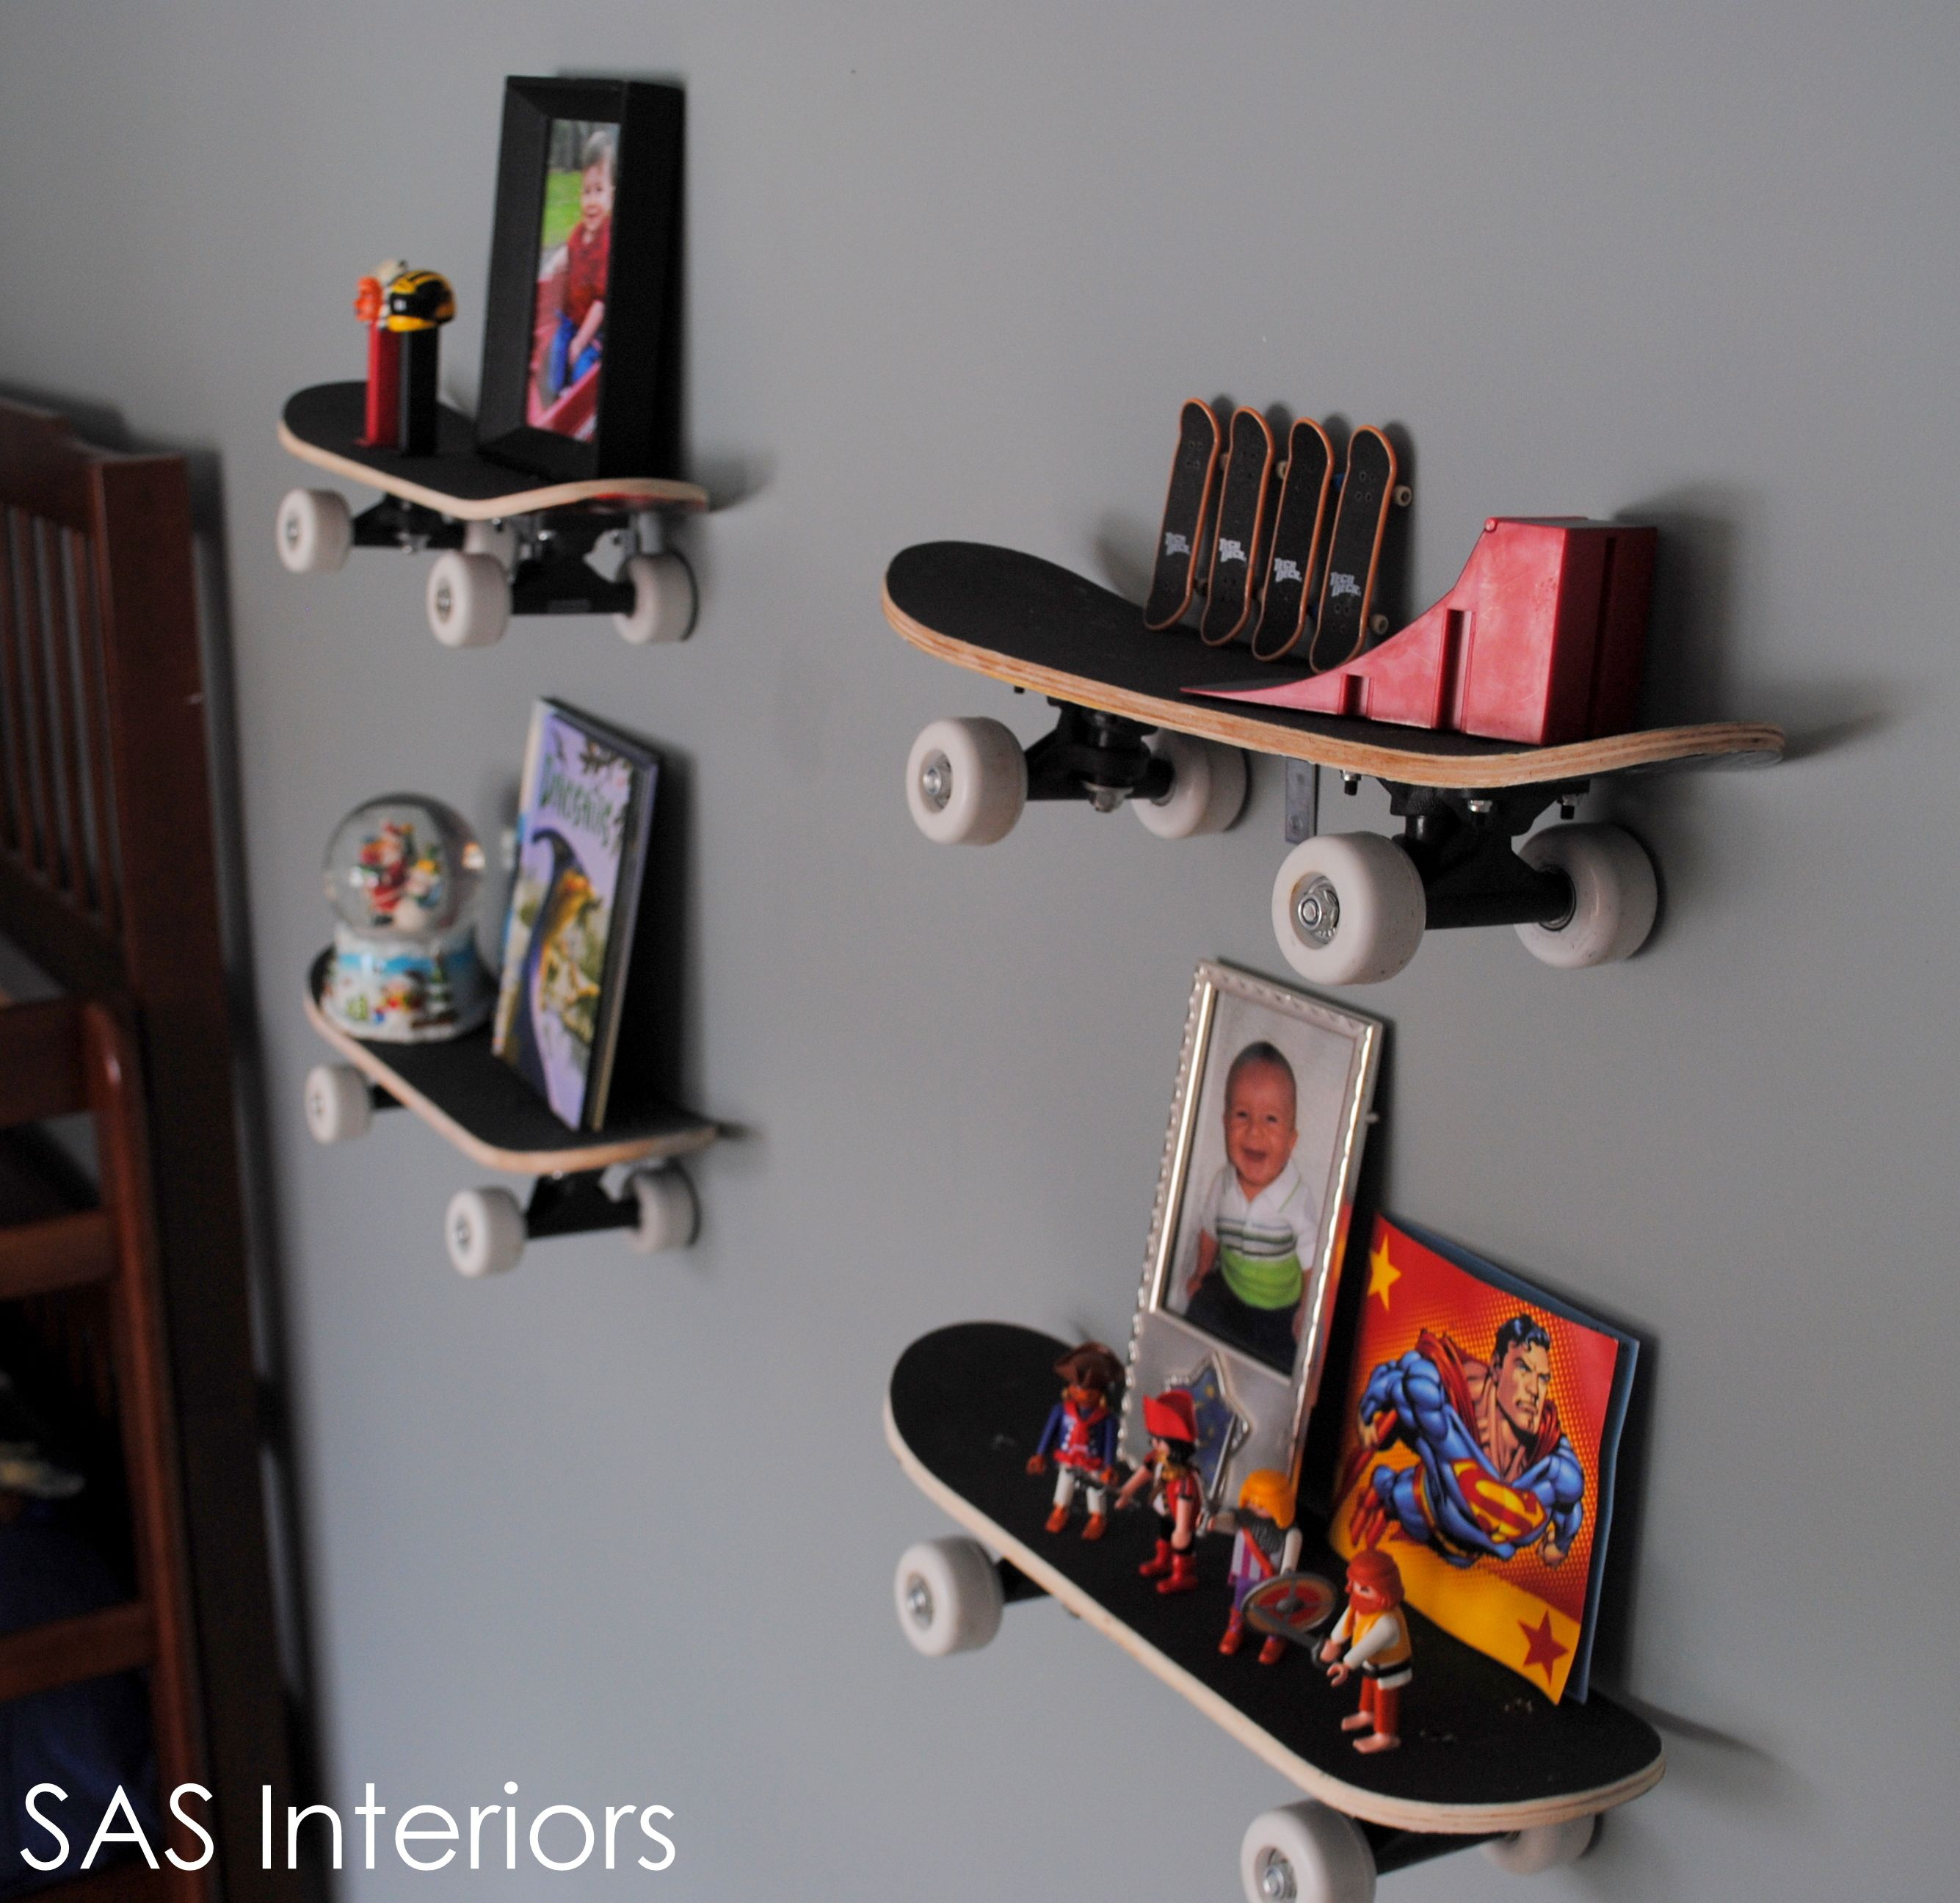 AuBergewohnlich Hochwertig Skate Board Shelves Cute For A Kids Bedroom Or A Playroom